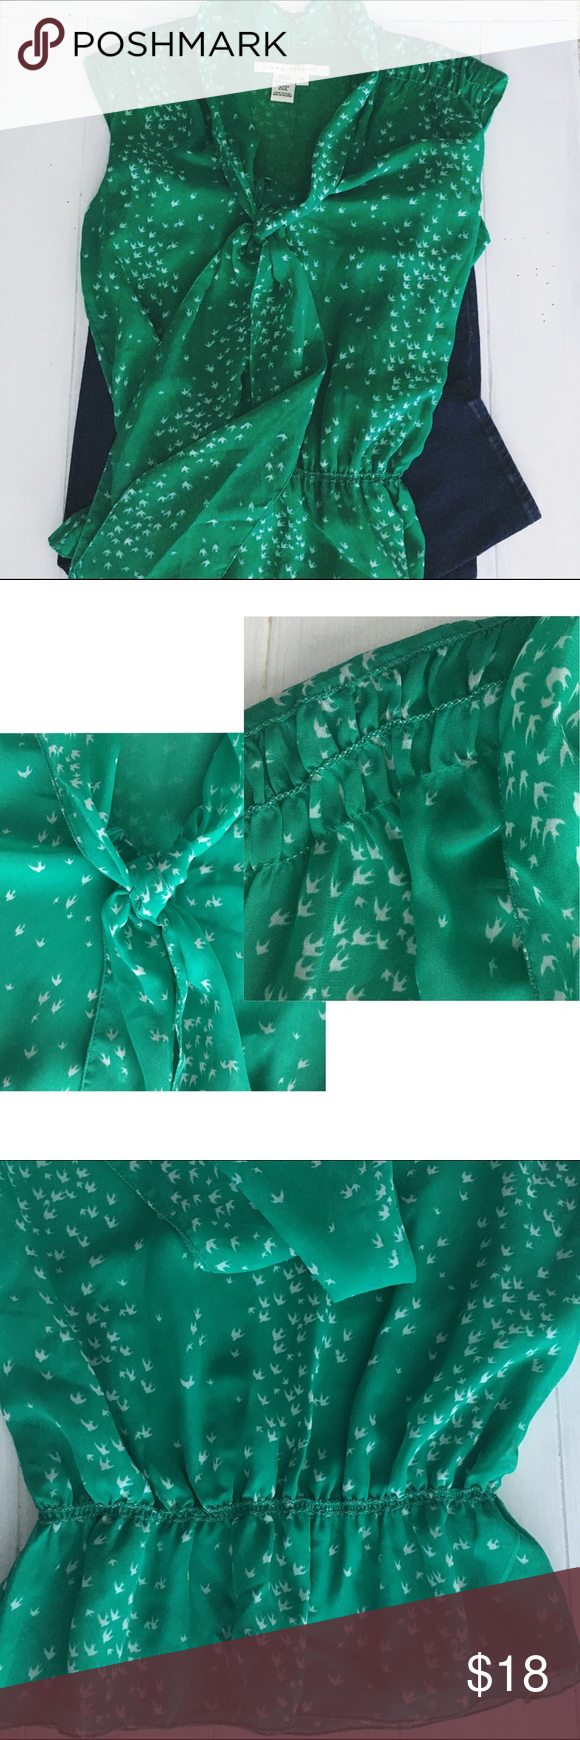 Max Studio Top Birds of a feather definitely stick together as seen in this Mac Studio too. This is a great piece alone or under a blazer. It's a beautiful green color with a white bird pattern. It's sleeveless with an elastic waist. 100% polyester Max Studio Tops